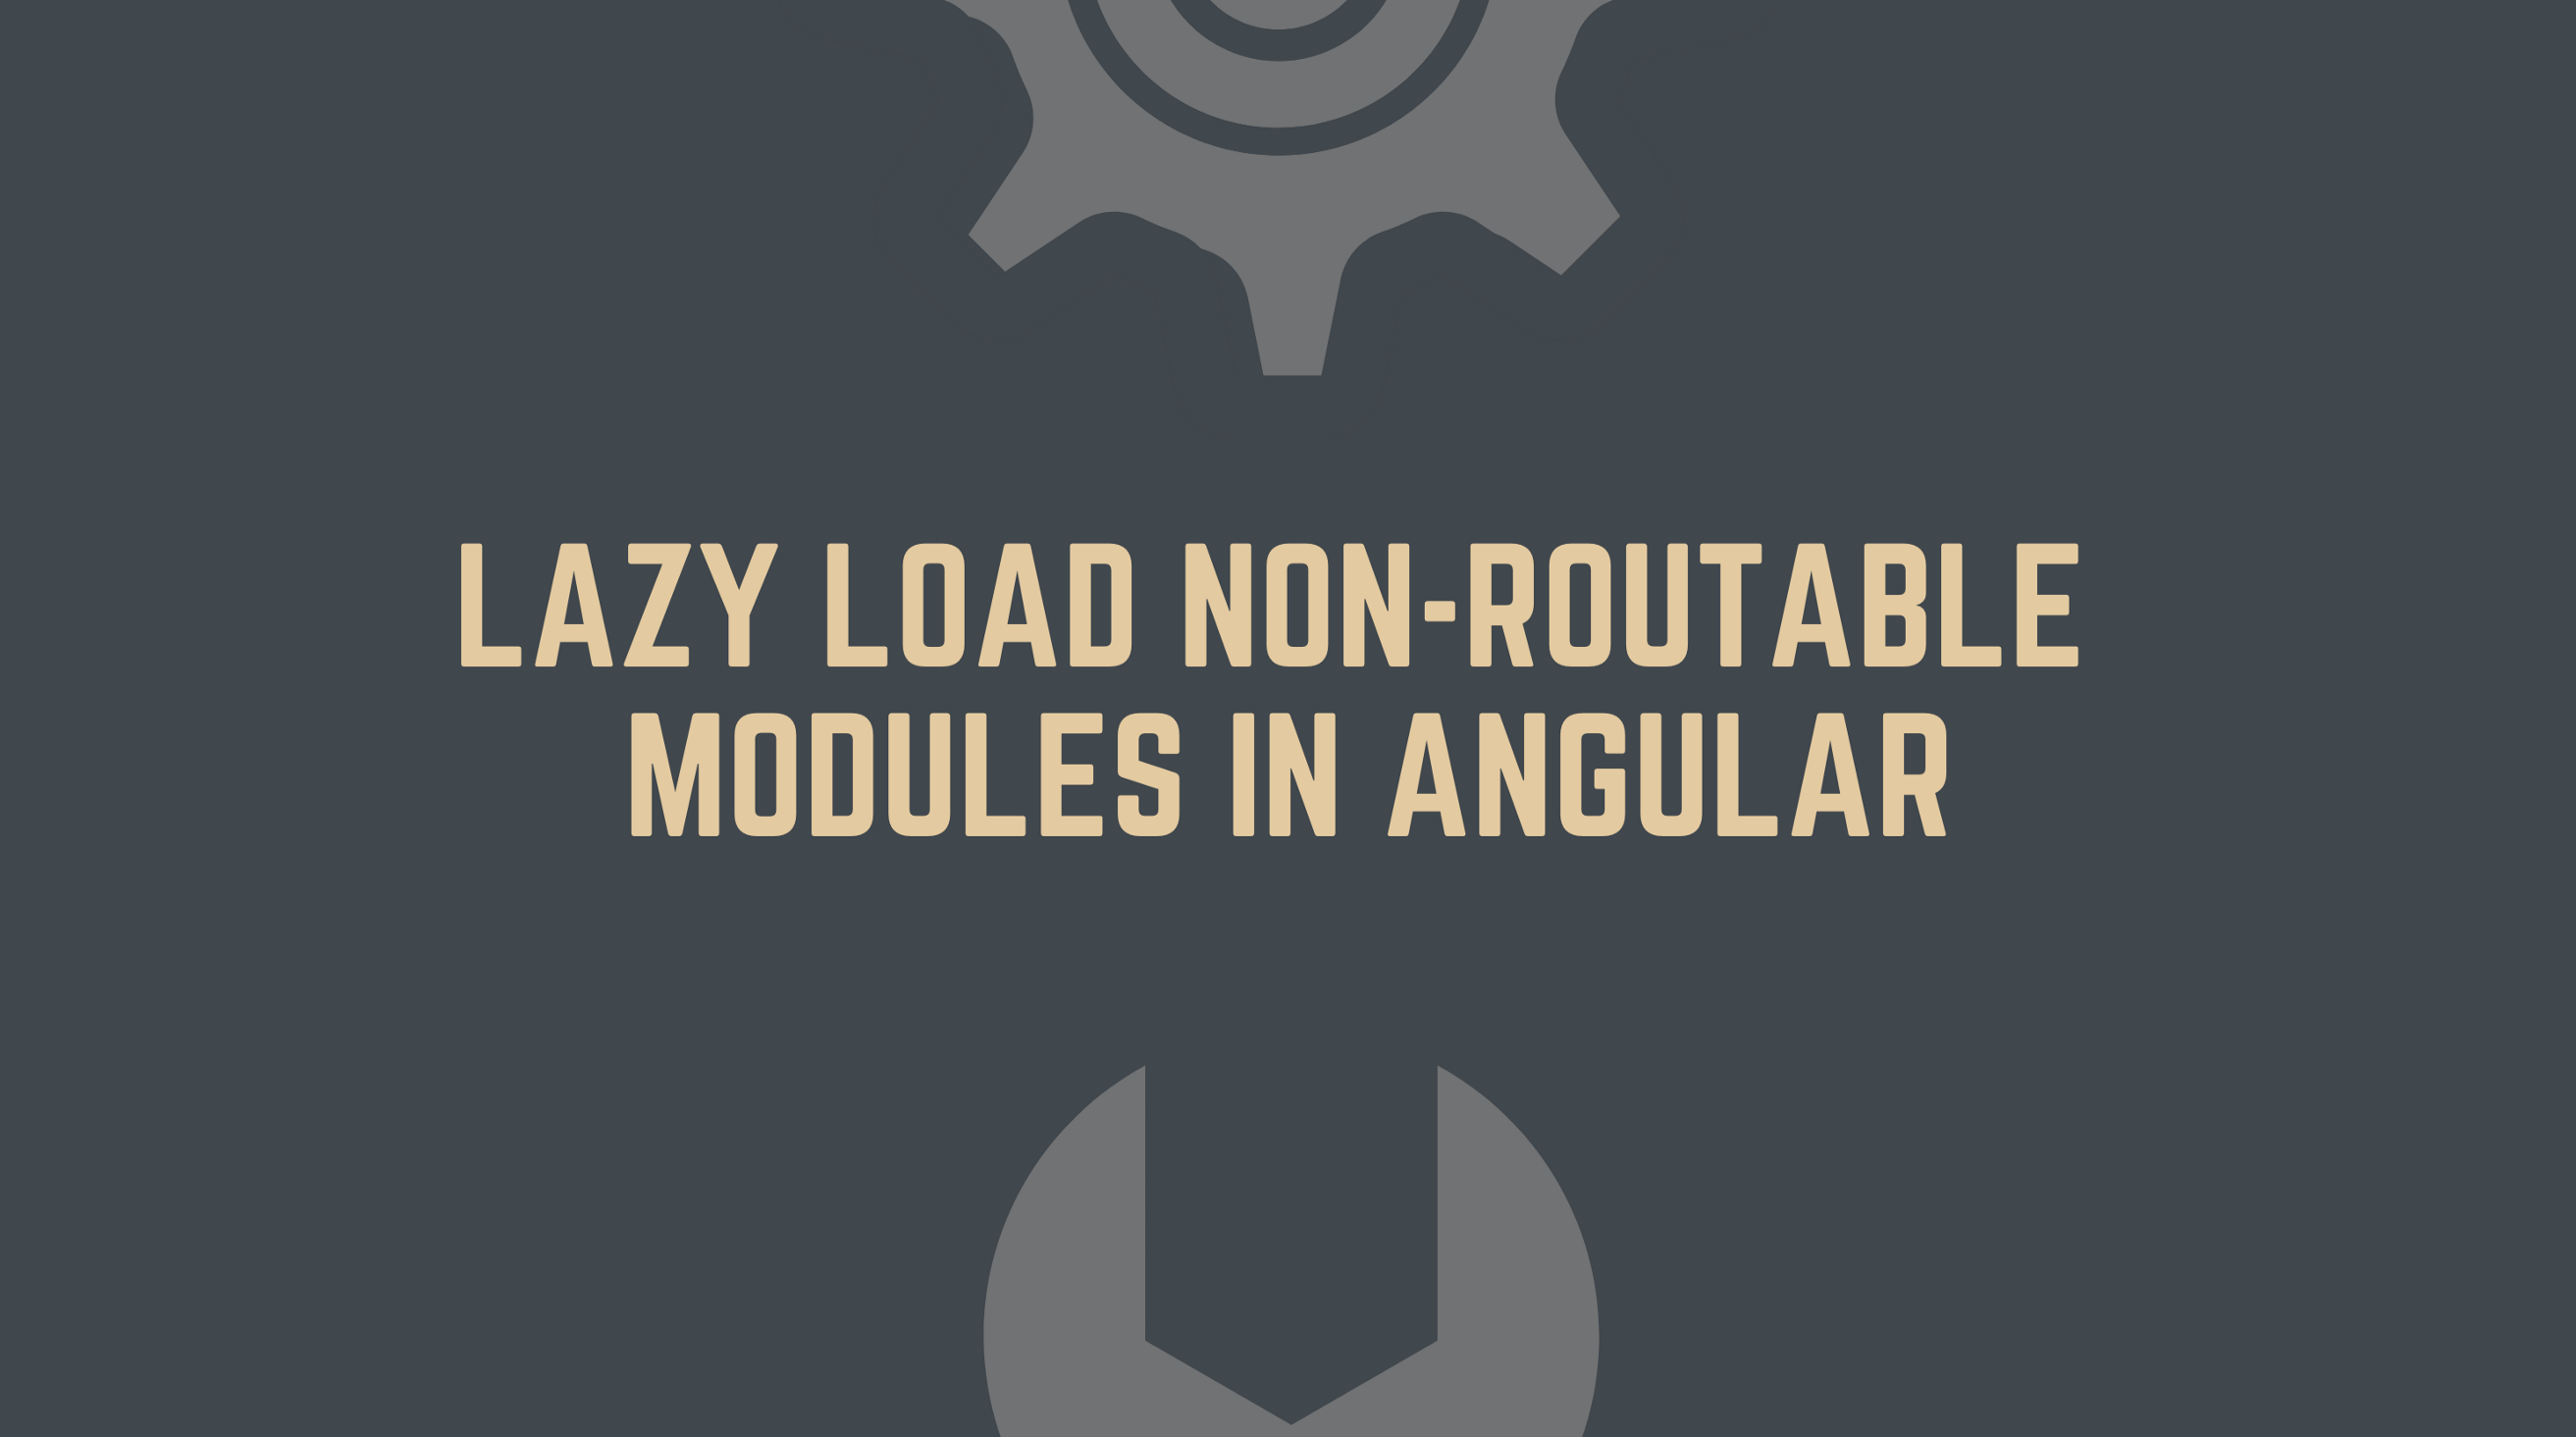 The Need for Speed: Lazy Load Non-Routable Modules in Angular 🏎